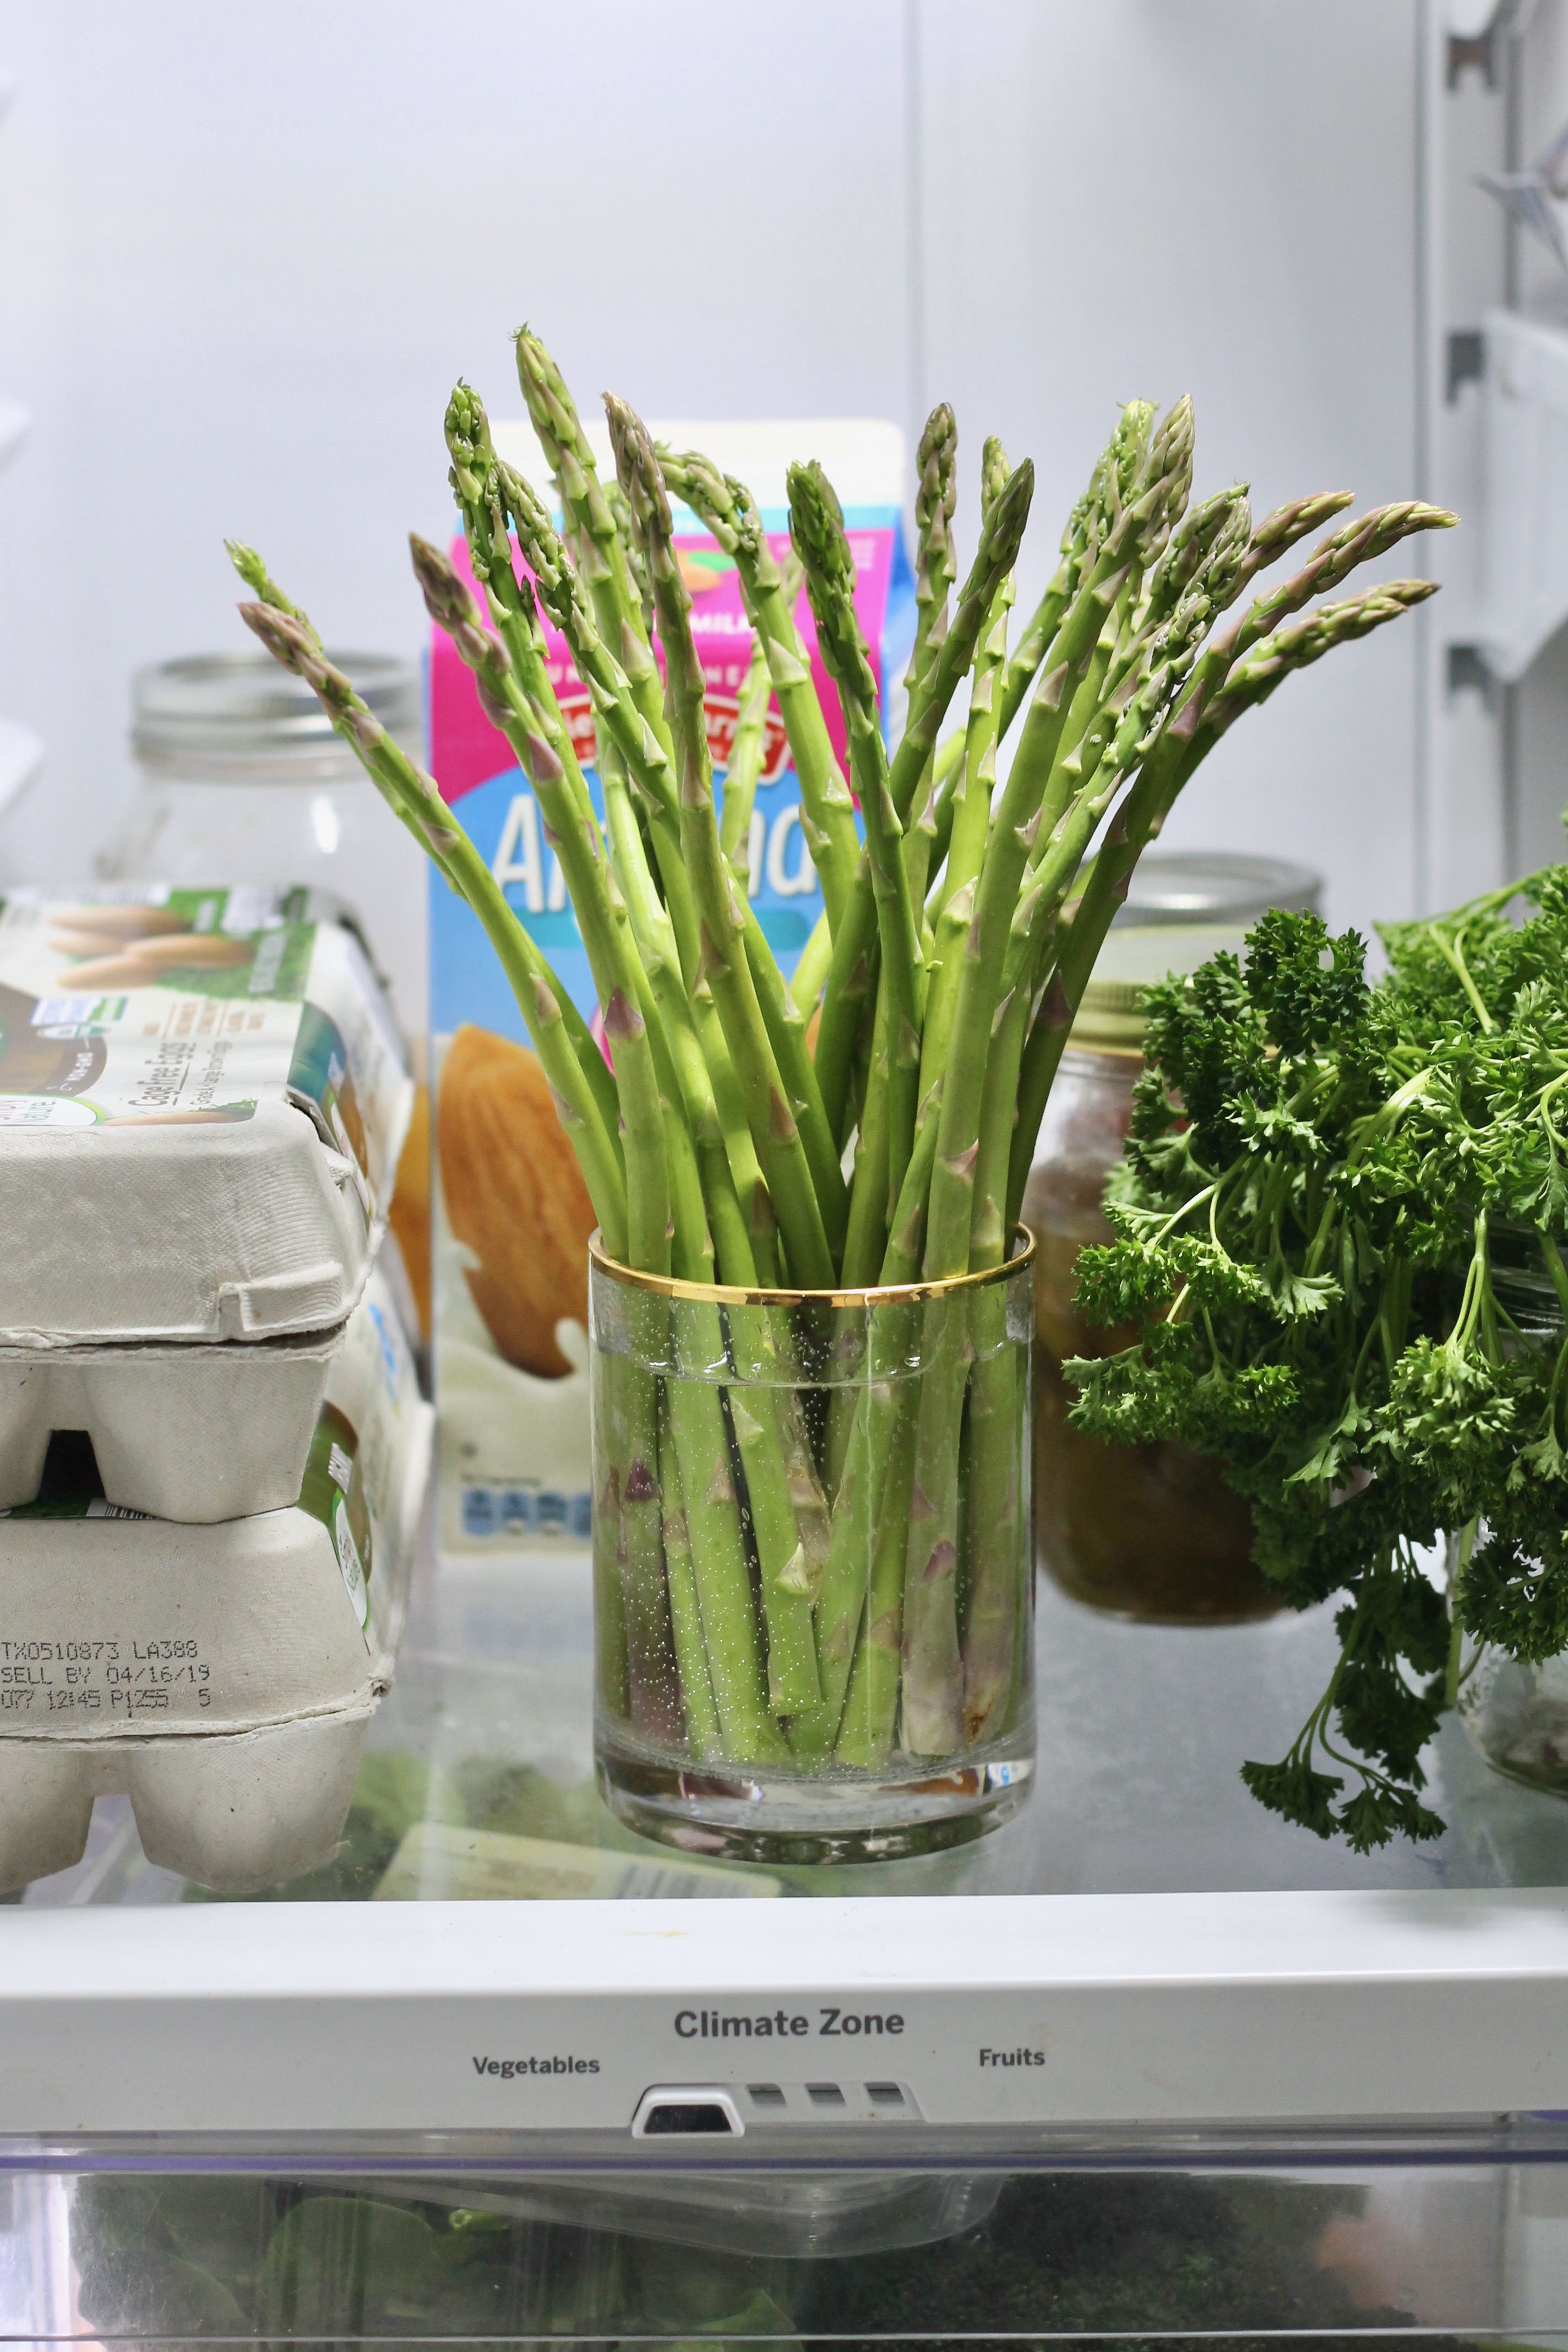 Asparagus placed upwards in a cup or water in a refrigerator